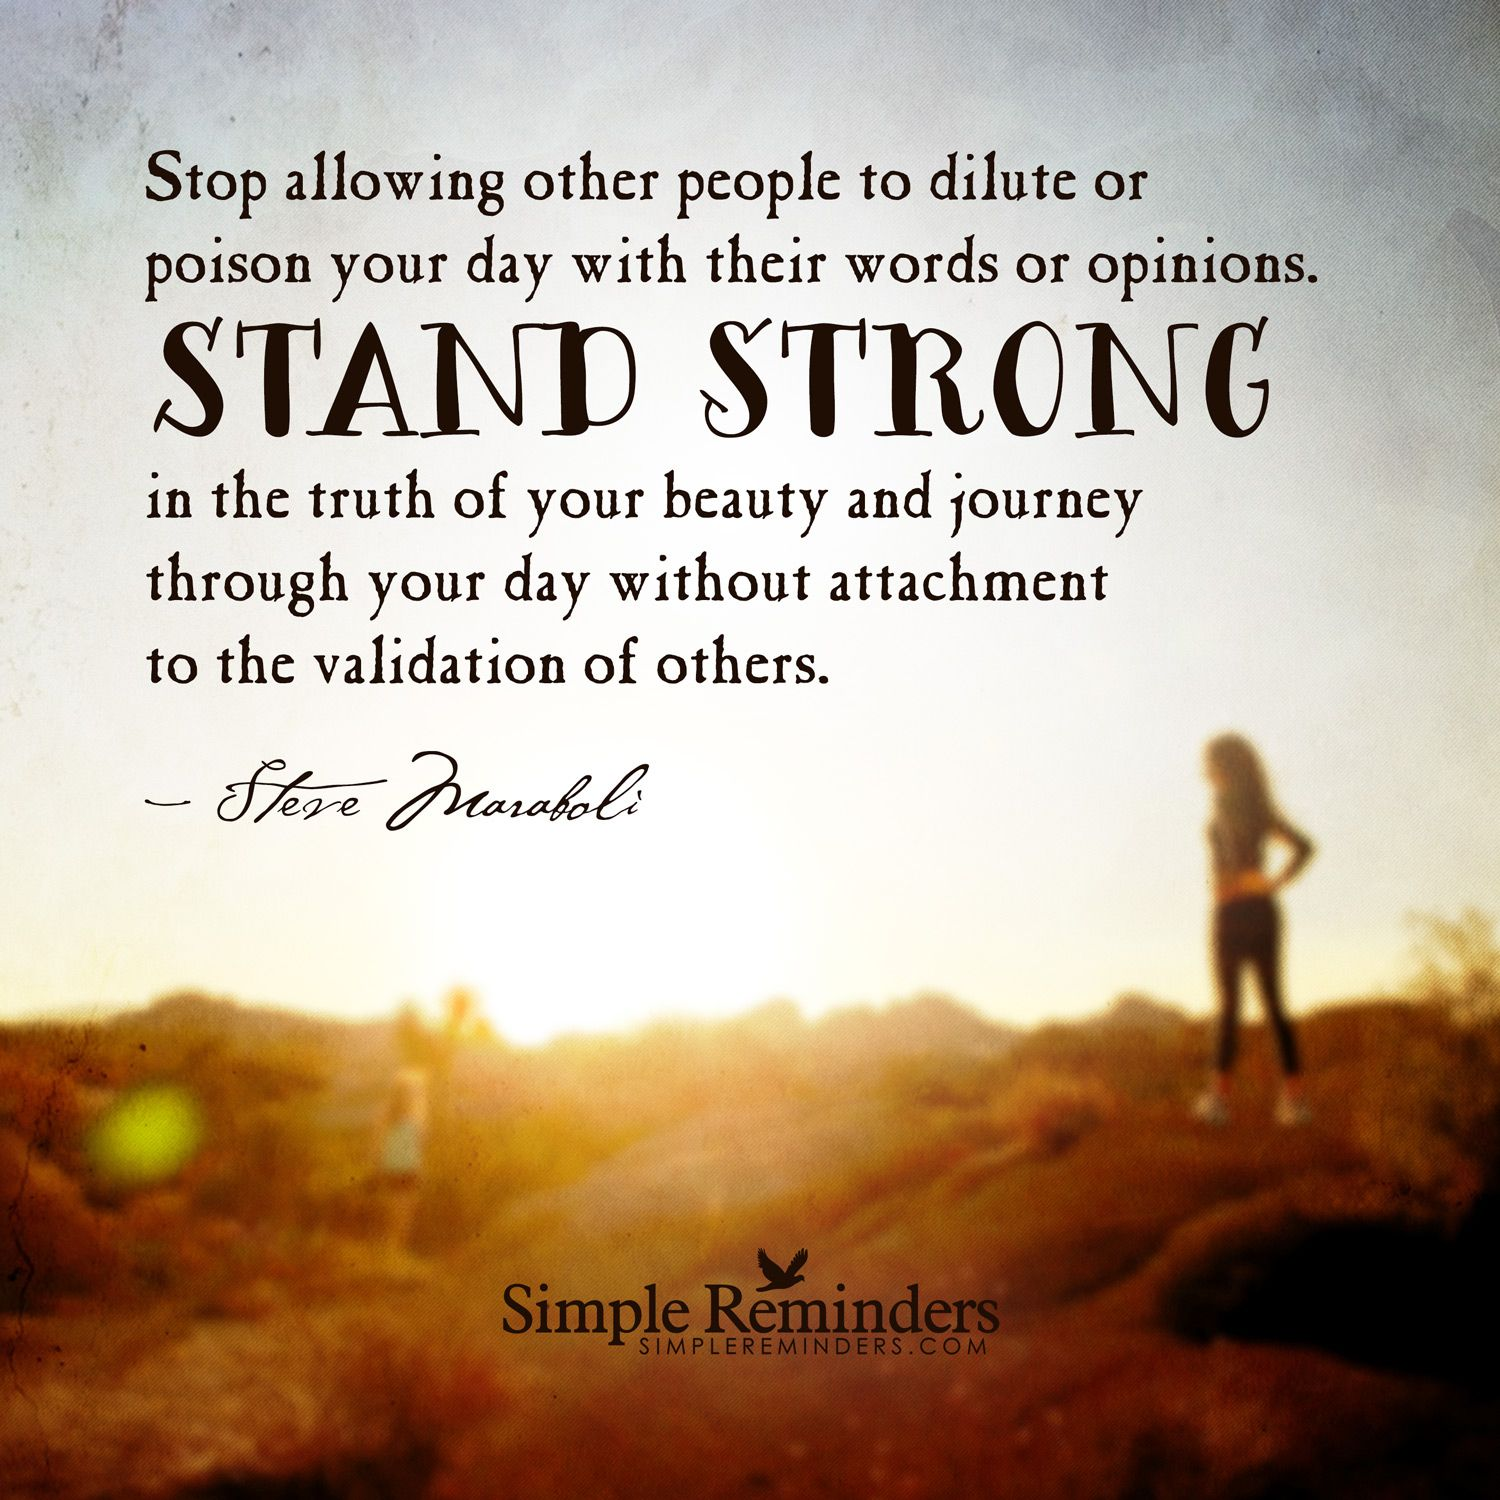 Stop allowing other people to dilute or poison your day